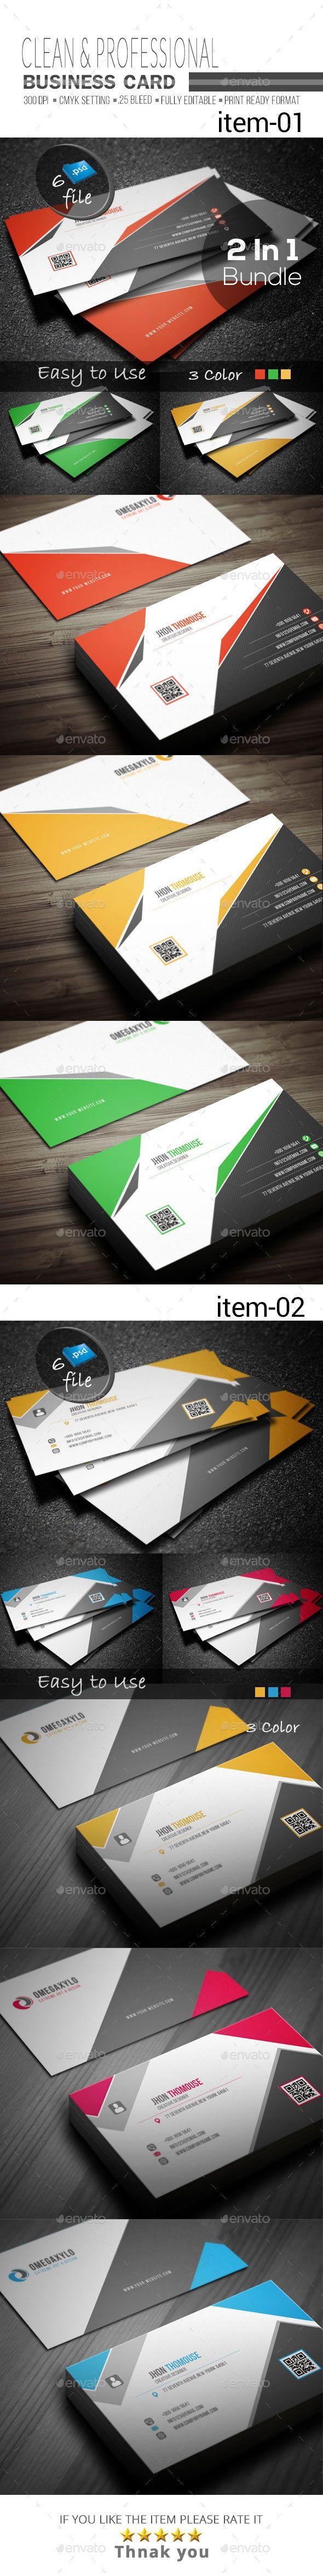 45 best business card images on pinterest